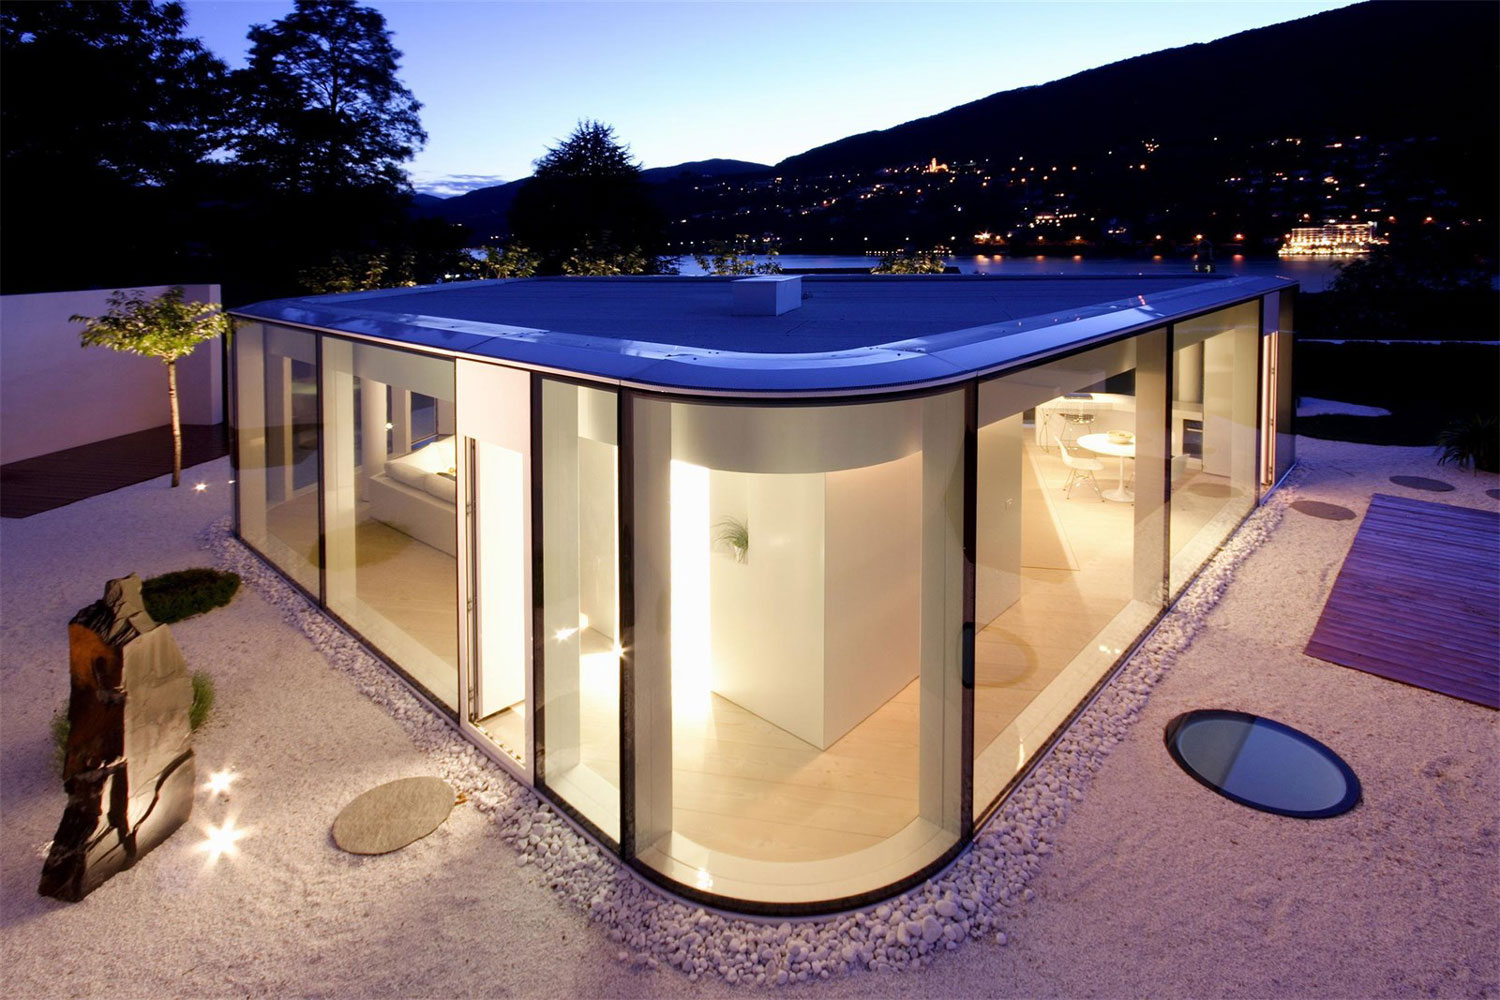 This villa is enveloped in glass to take full advantage of its location on Lake Lugano with state-of-the-art materials, luxurious finishes, and designer furniture..